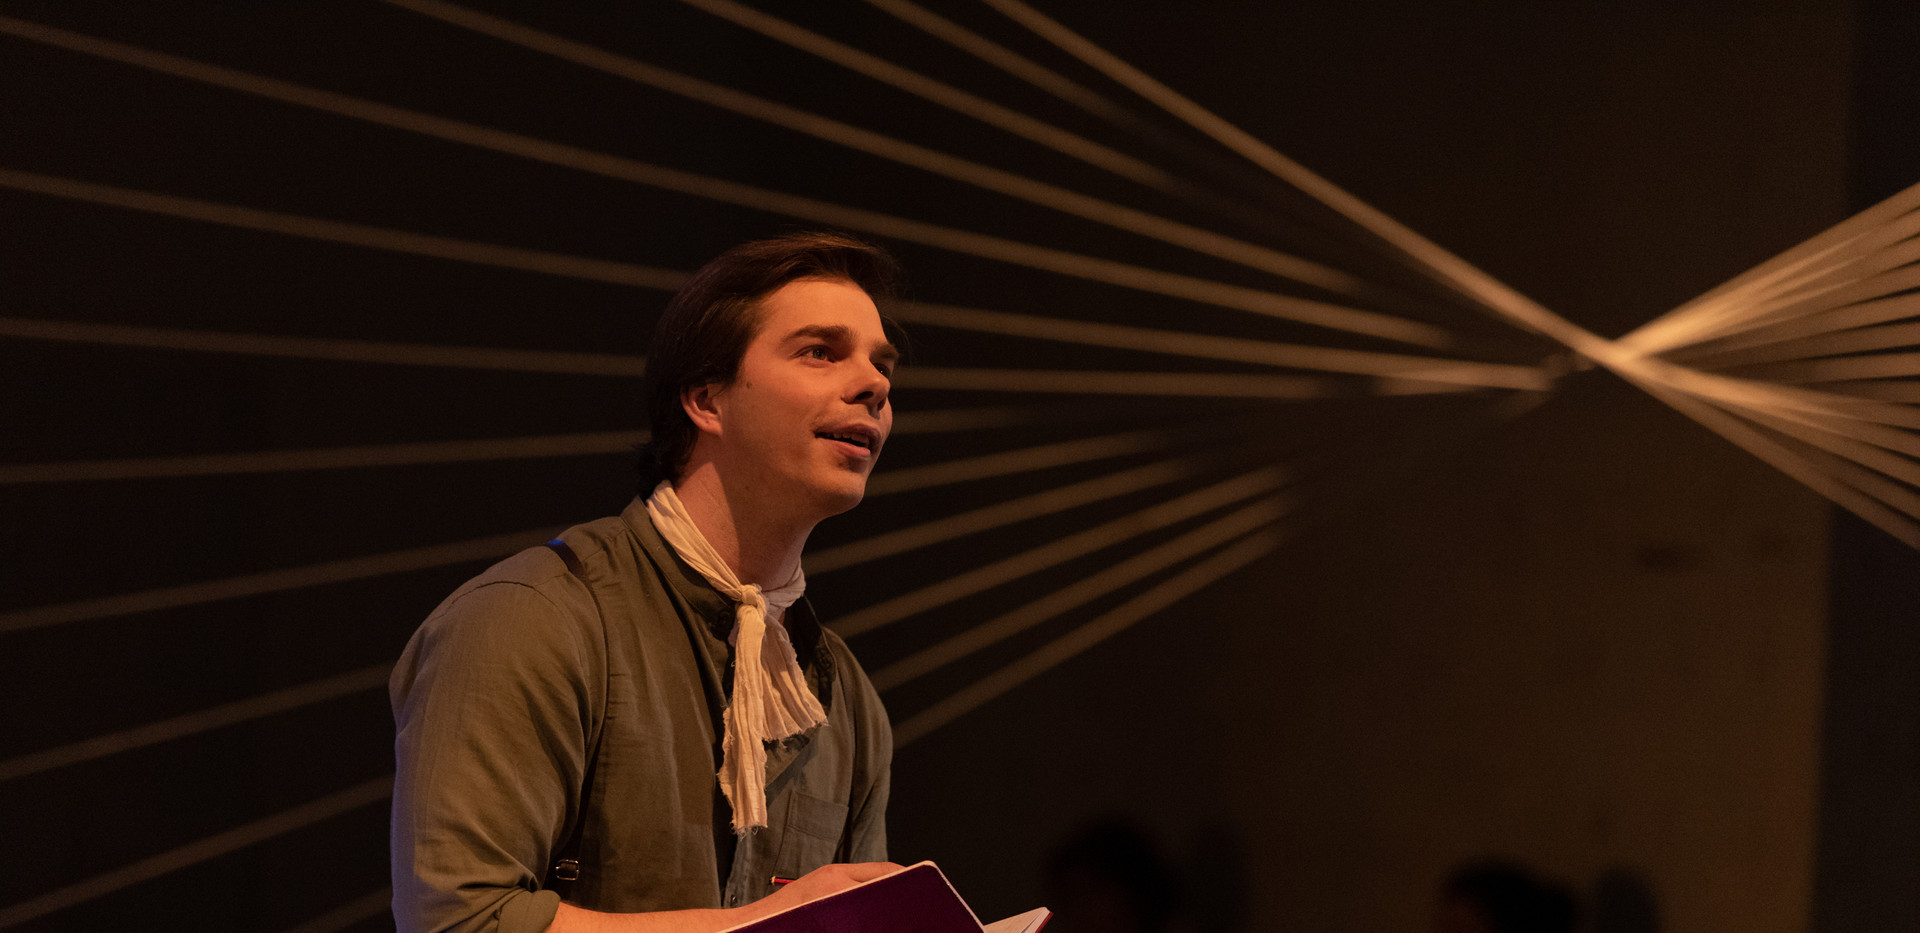 Cameron Sibly as Young Lawrence Hargrave in Barry Conyngham's Fly by Lyric Opera. Photo by Lachlan Woods.